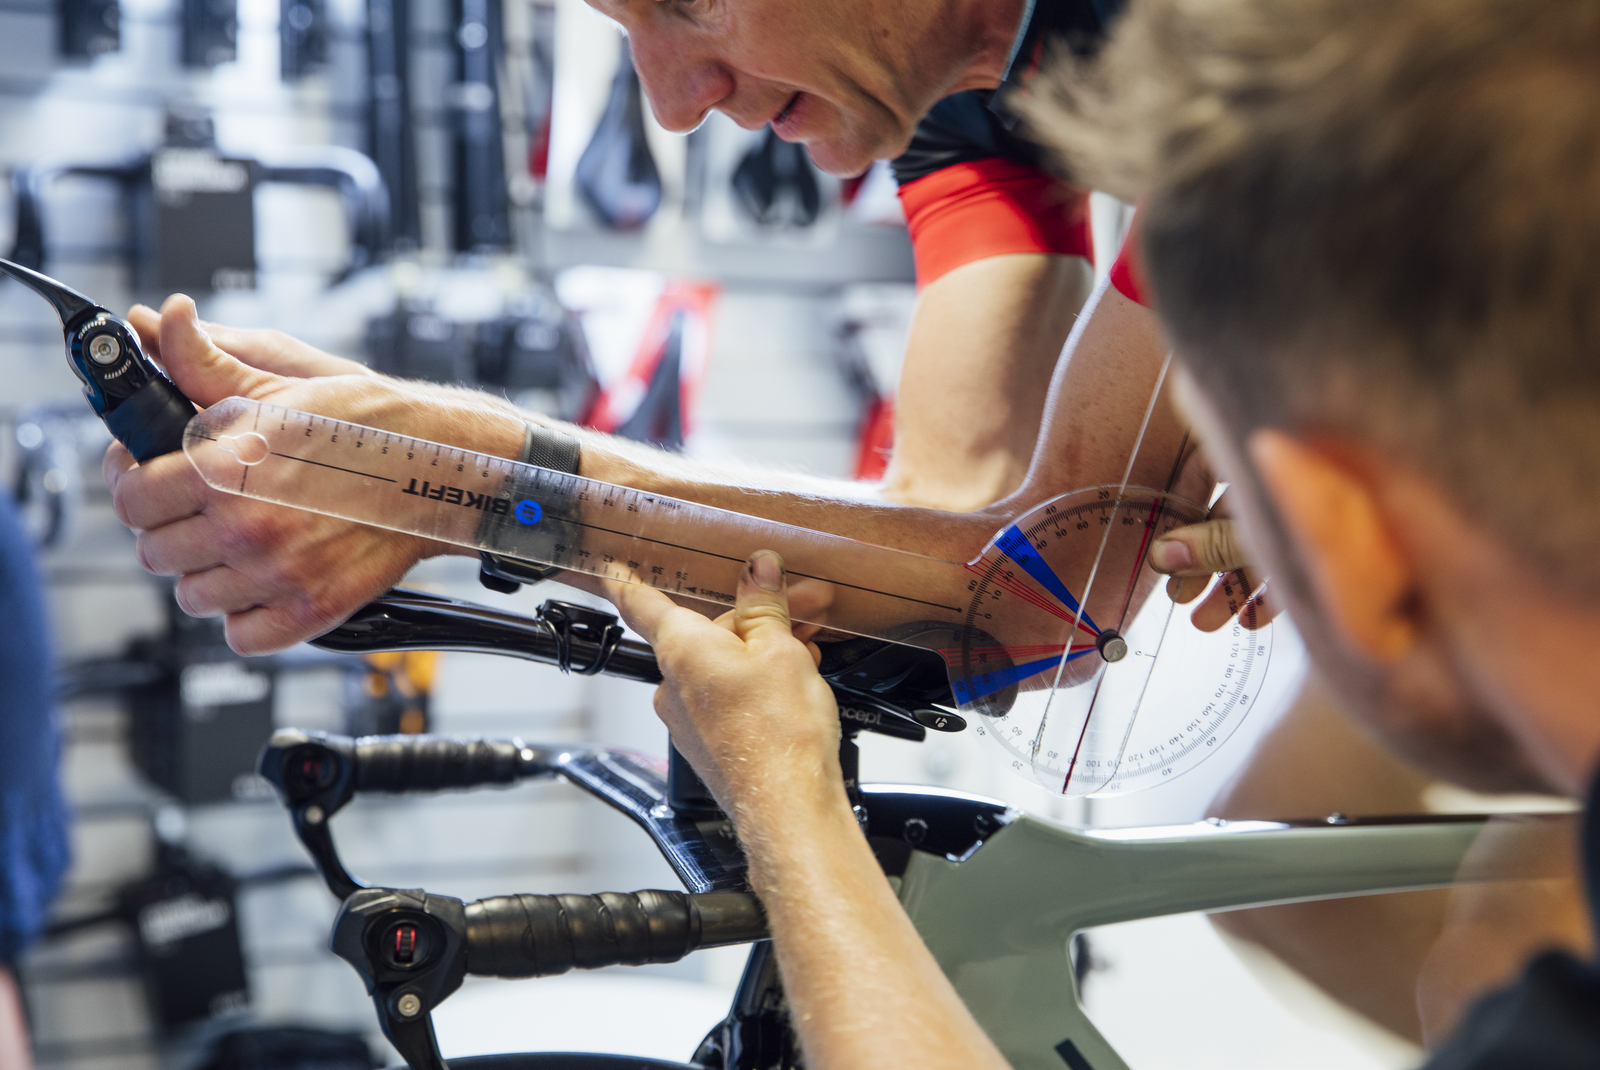 5 reasons you need a bike fit Image: Dan Gould